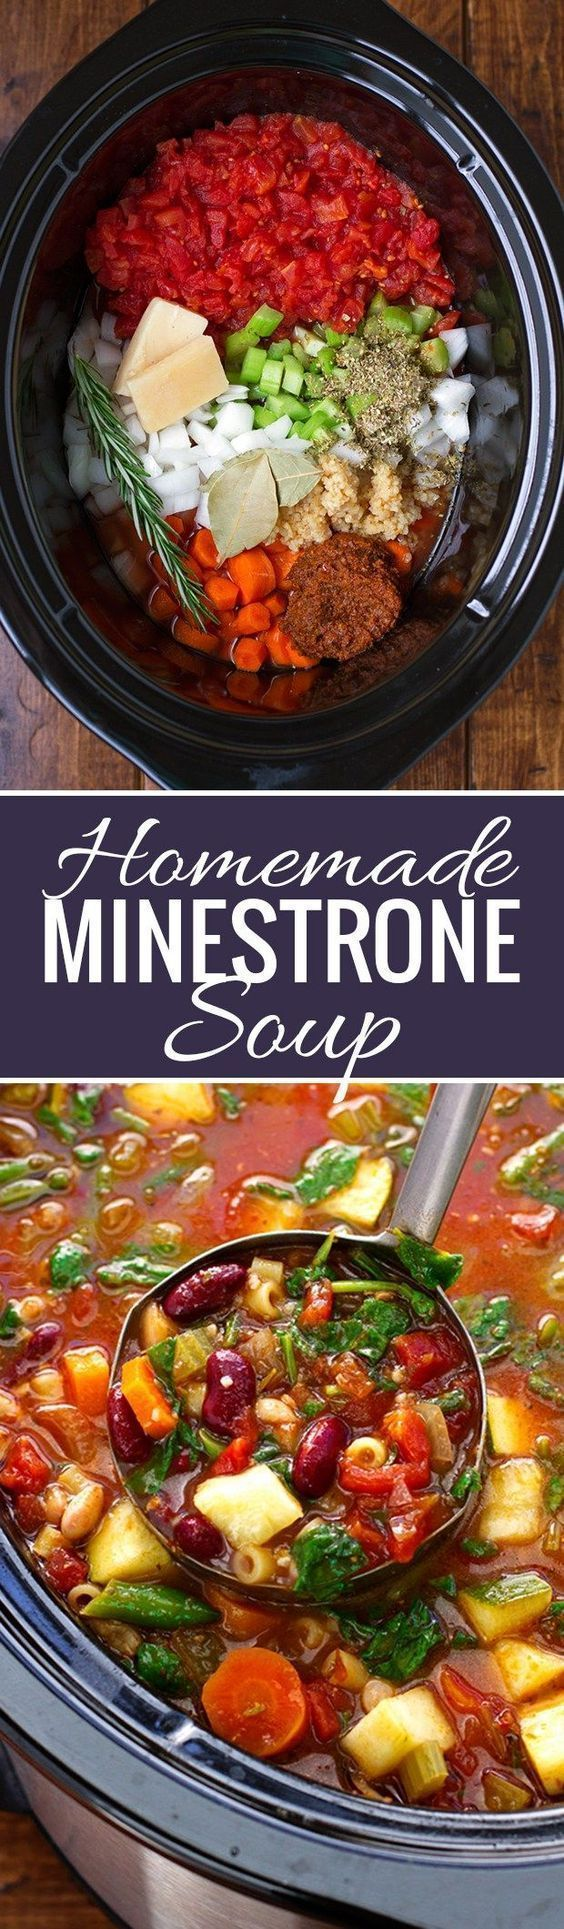 An easy to make, minestrone soup recipe is loaded with spinach and zucchini. It's also protein packed with red kidney beans and great northern beans. You'll be full for hours from this healthy, nutritious soup!   Source: http://www.littlespicejar.com